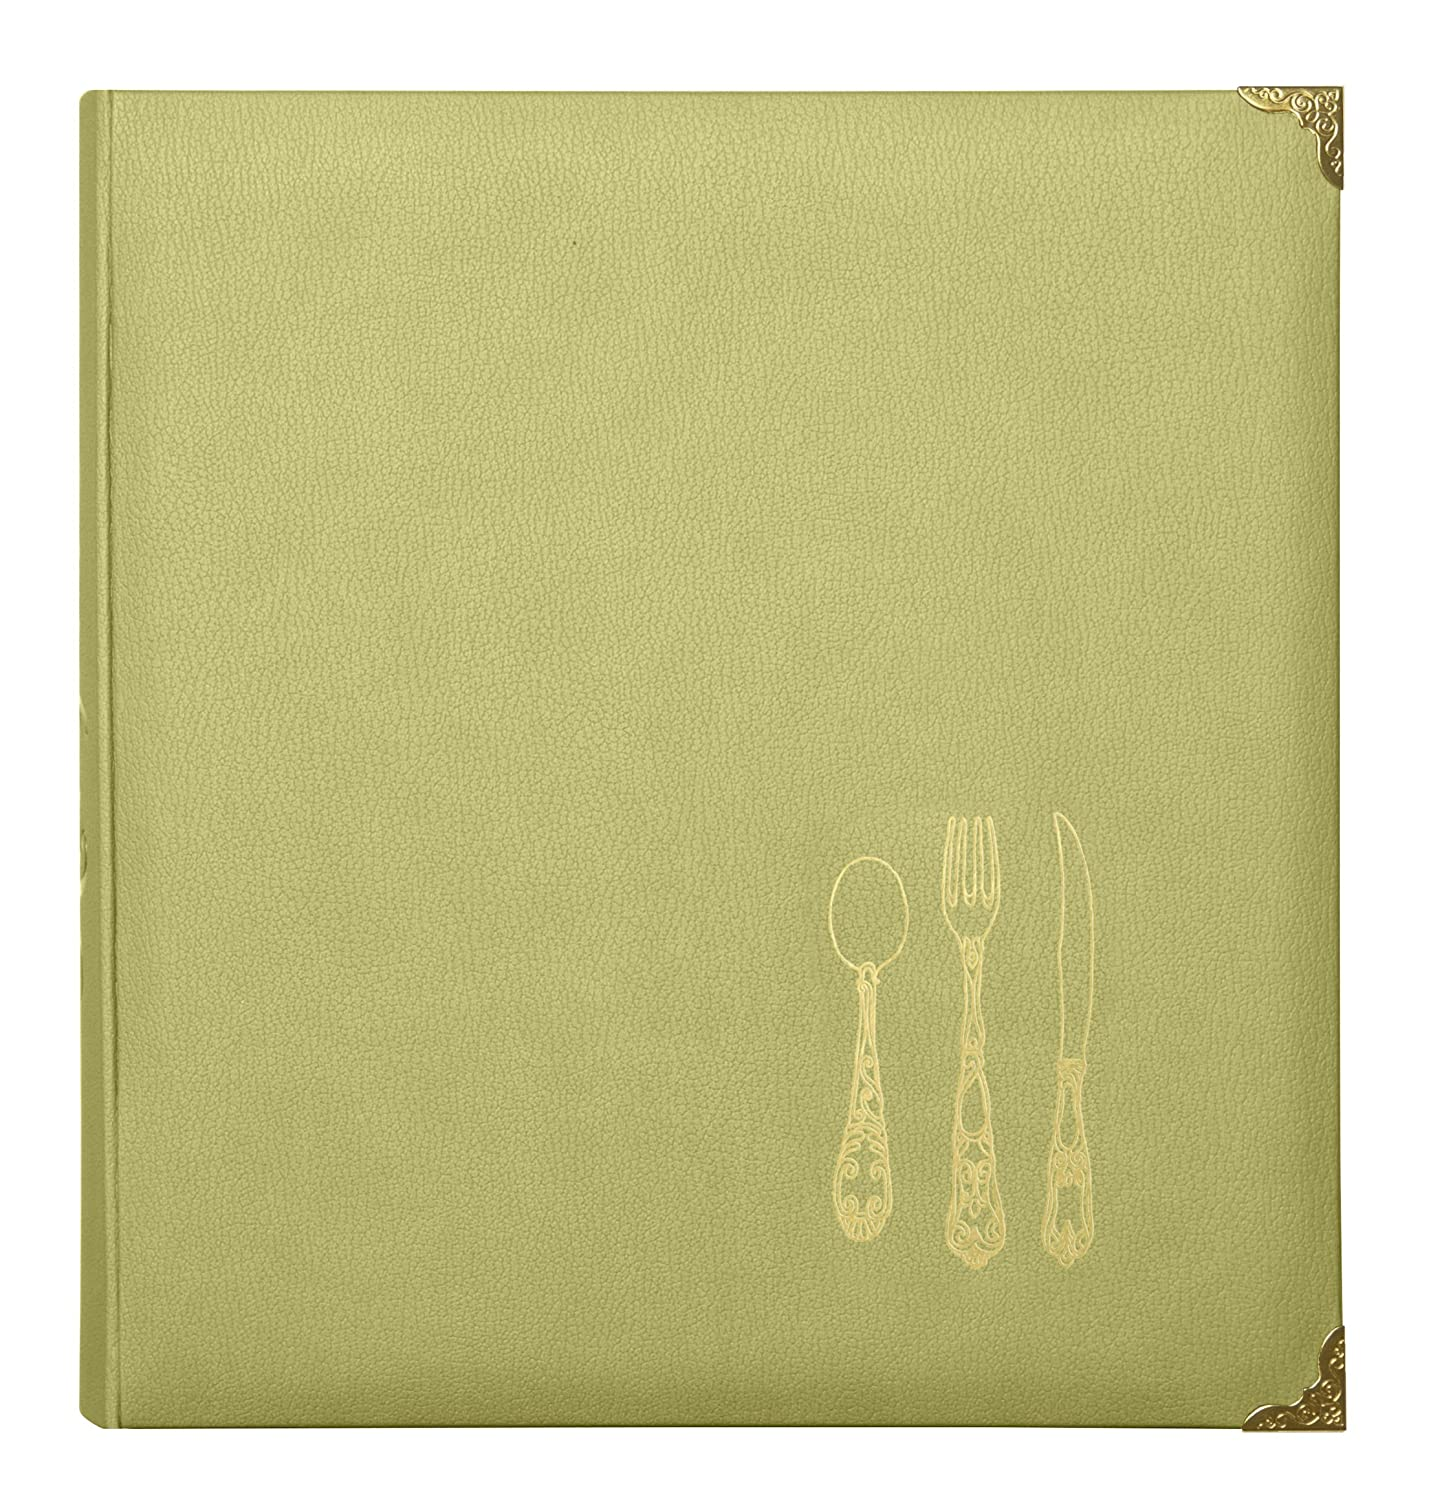 C.R. Gibson Leatherette Recipe Binder, Black/Multicolor QP14-16862